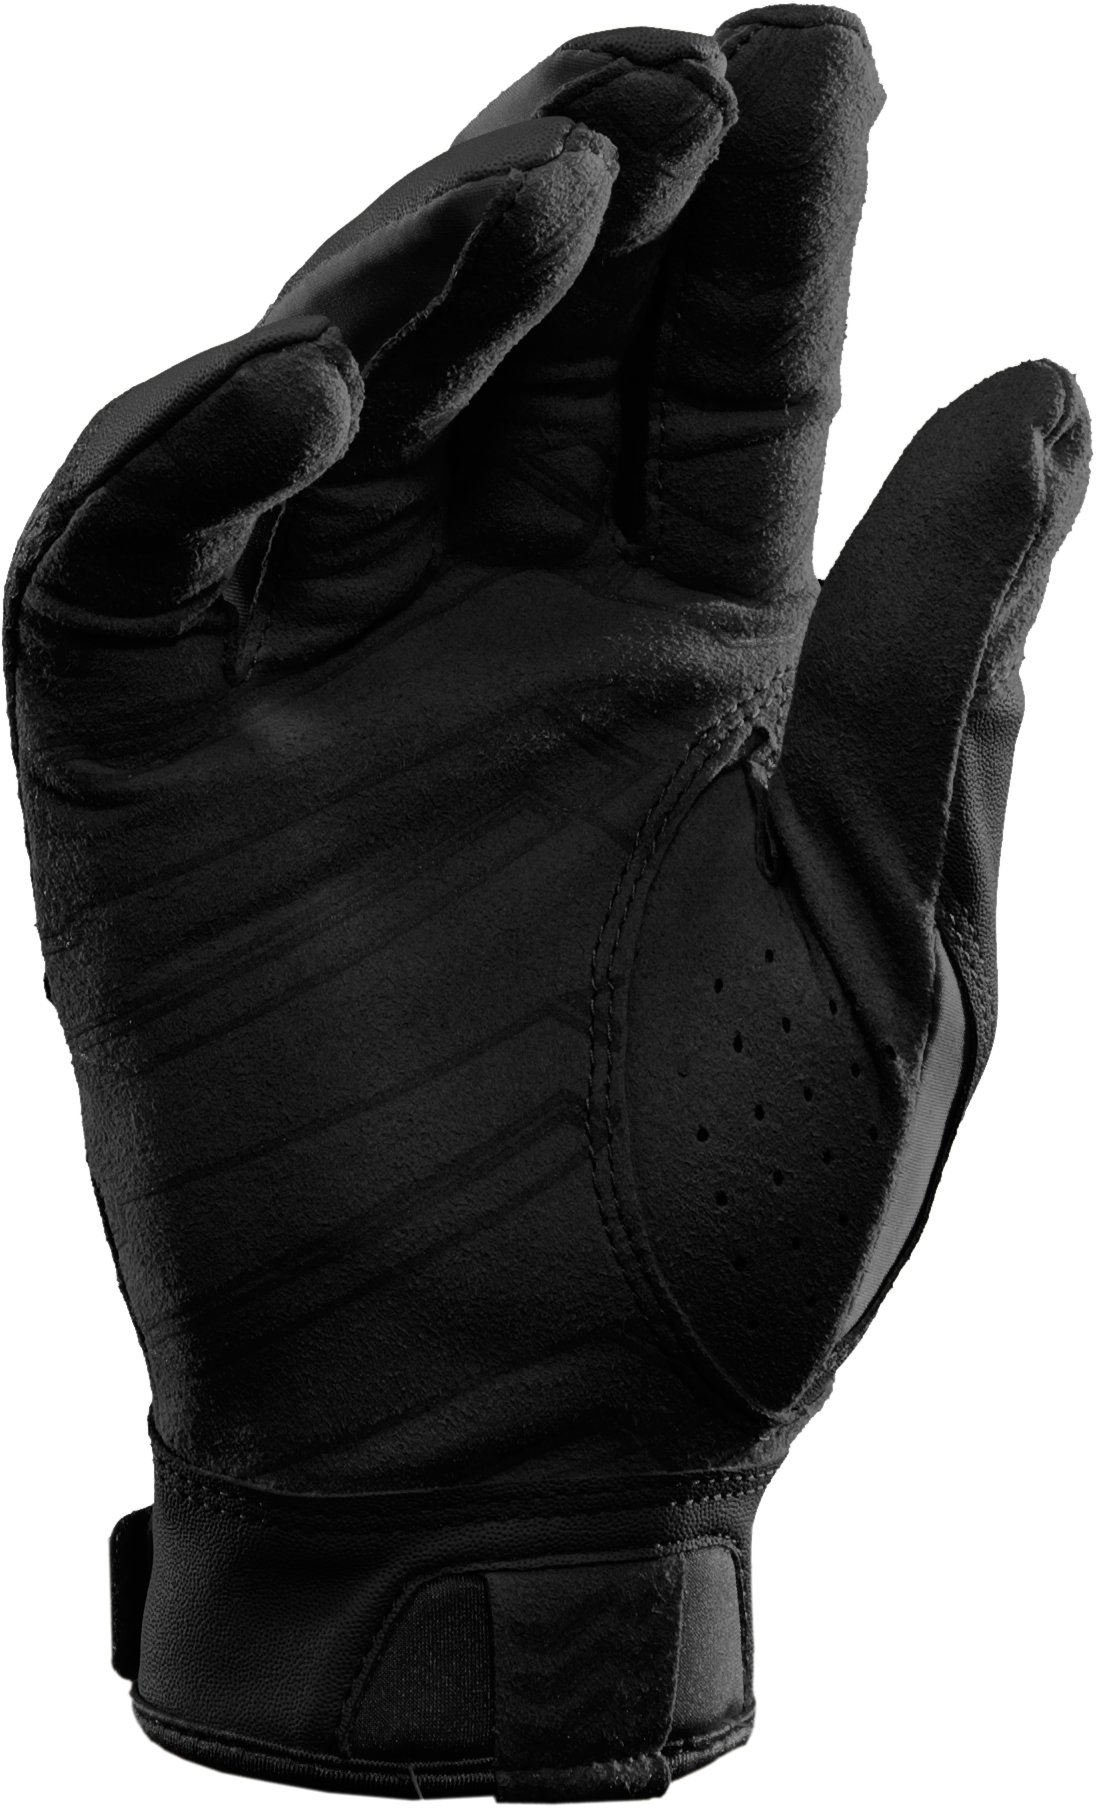 Men's Tactical Summer Blackout Glove, Black , undefined